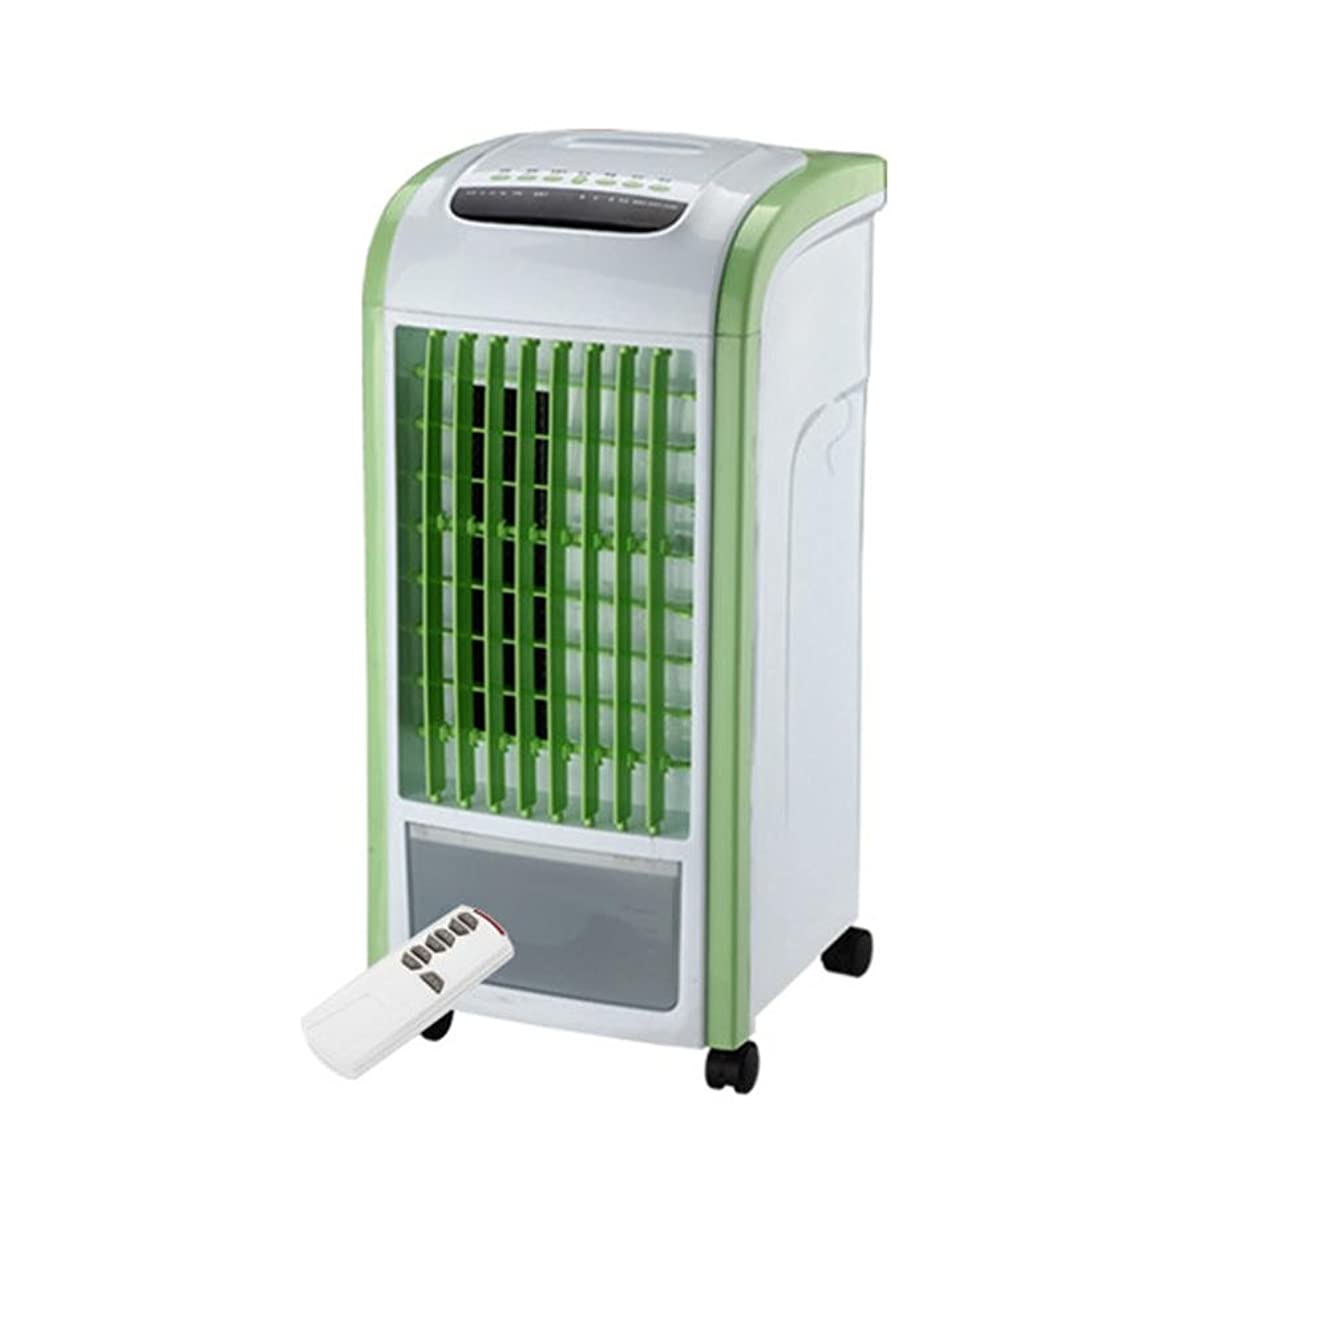 Lljin 4 in 1 Air Cooler Green Remote Control Fan Humidifier Air Freshener